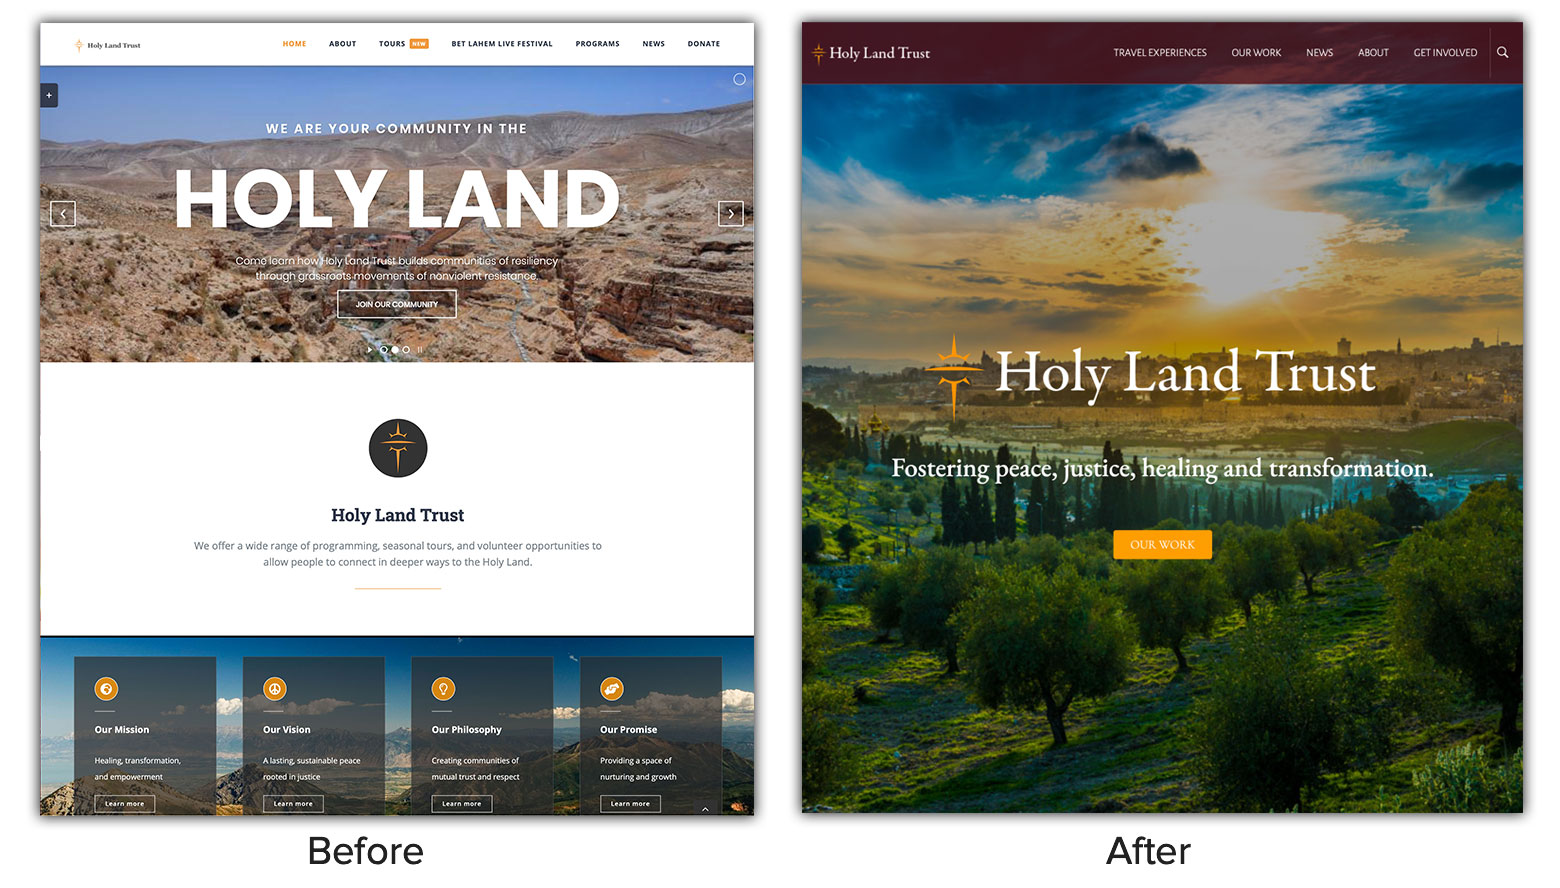 holy-land-trust-case-study-before-after.jpg